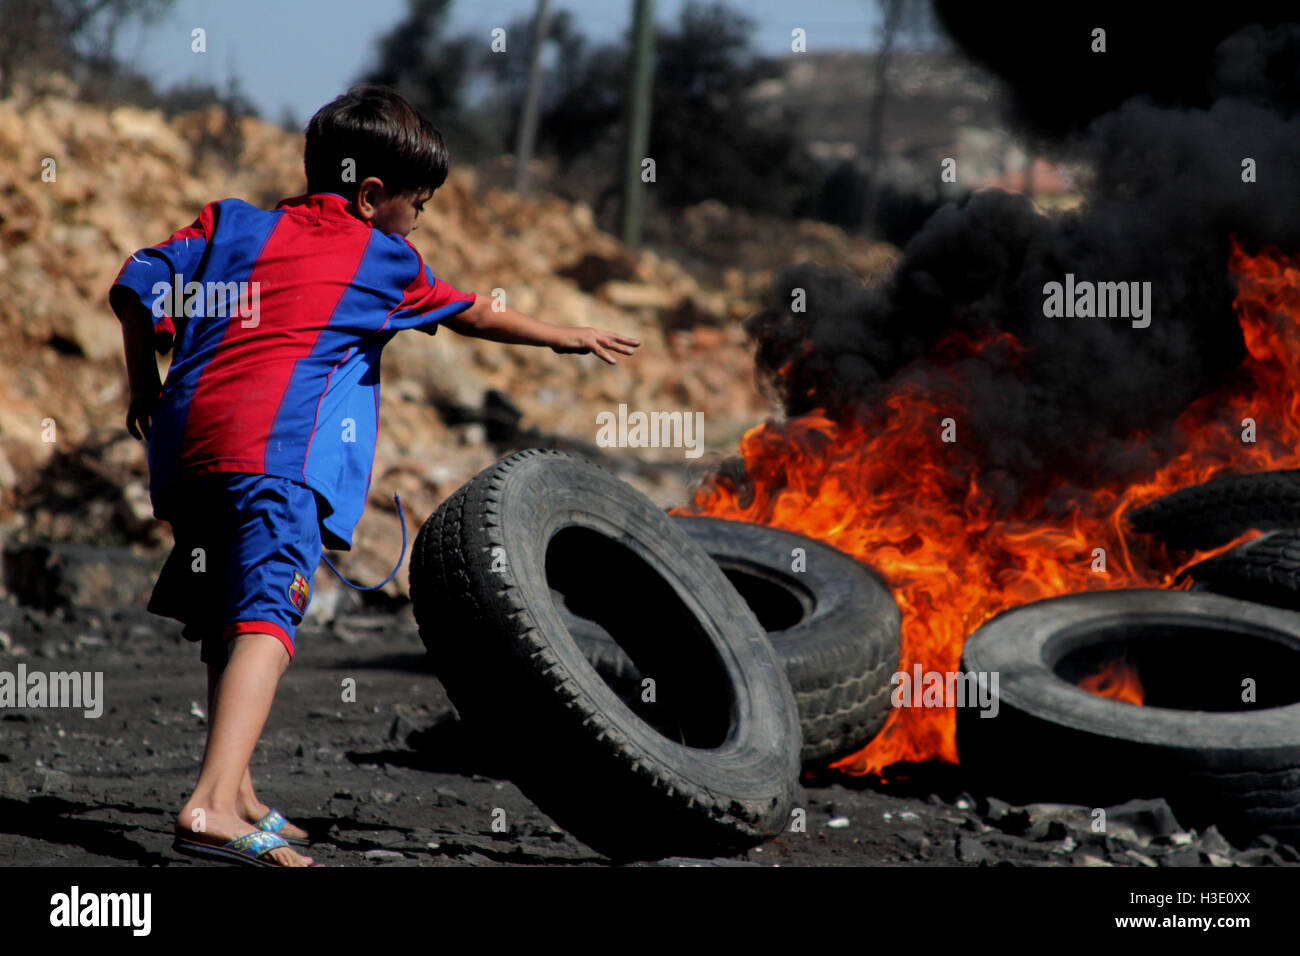 Nablus, West Bank, Palestine. 7th Oct, 2016. A Palestinian boy burns tires during clashes with Israeli security - Stock Image